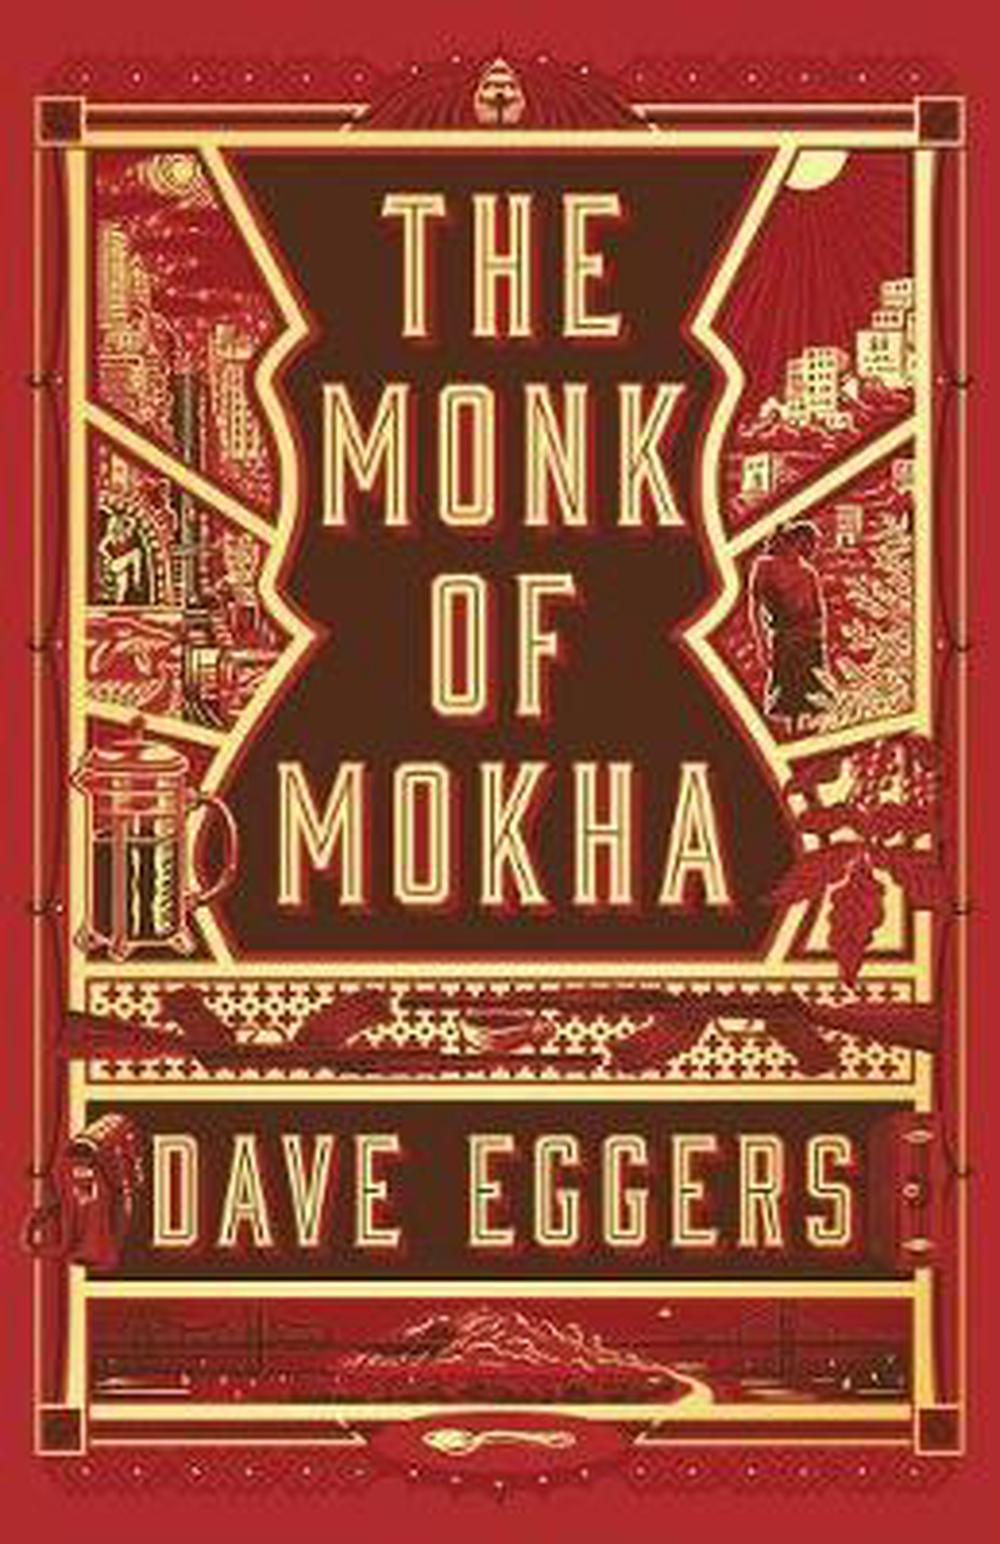 The Monk of Mokha by Dave Eggers, ISBN: 9781101947319